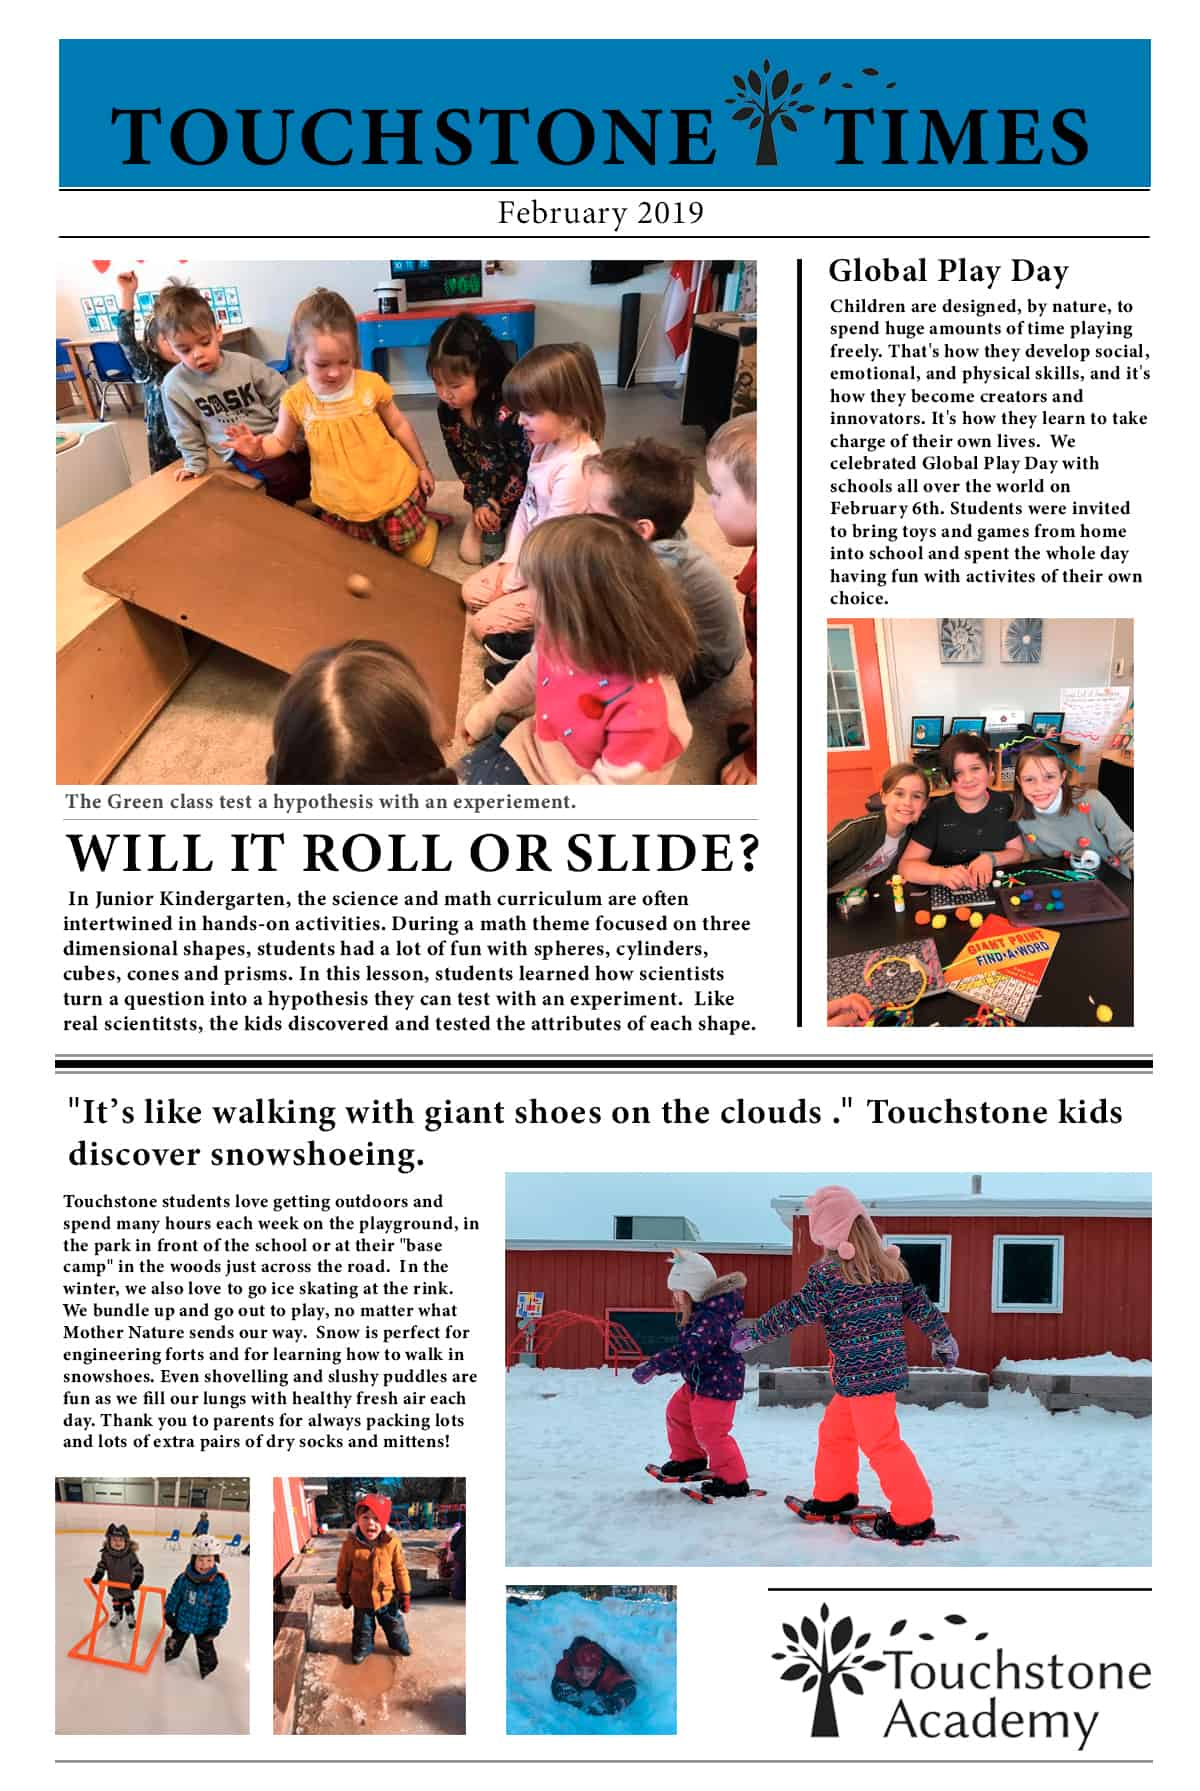 Touchstone Times February 2019